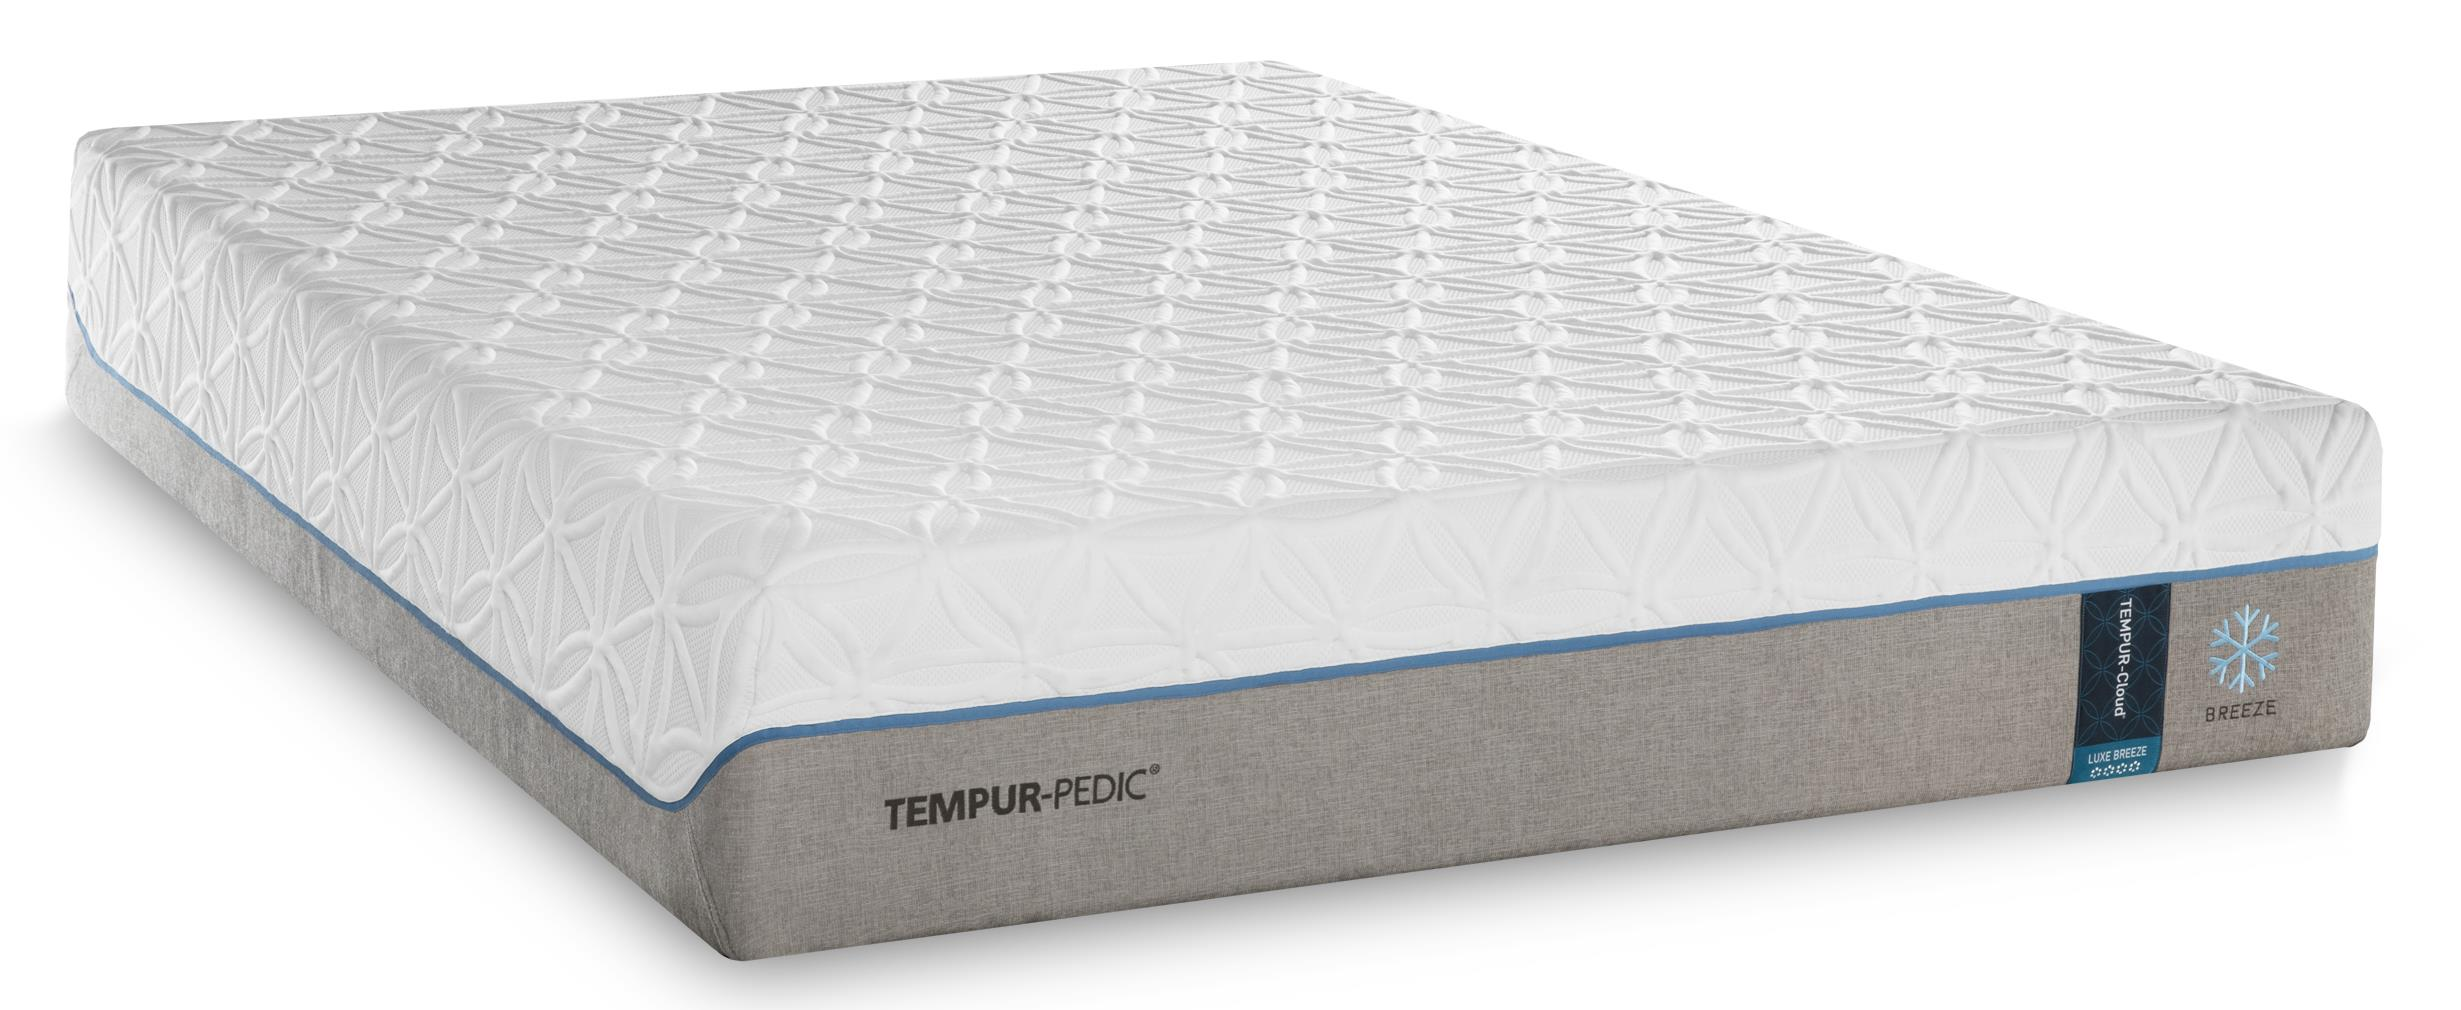 Tempur-Pedic® TEMPUR-Cloud Luxe Breeze 2 Twin Extra Long Ultra-Soft Mattress - Item Number: 10109220